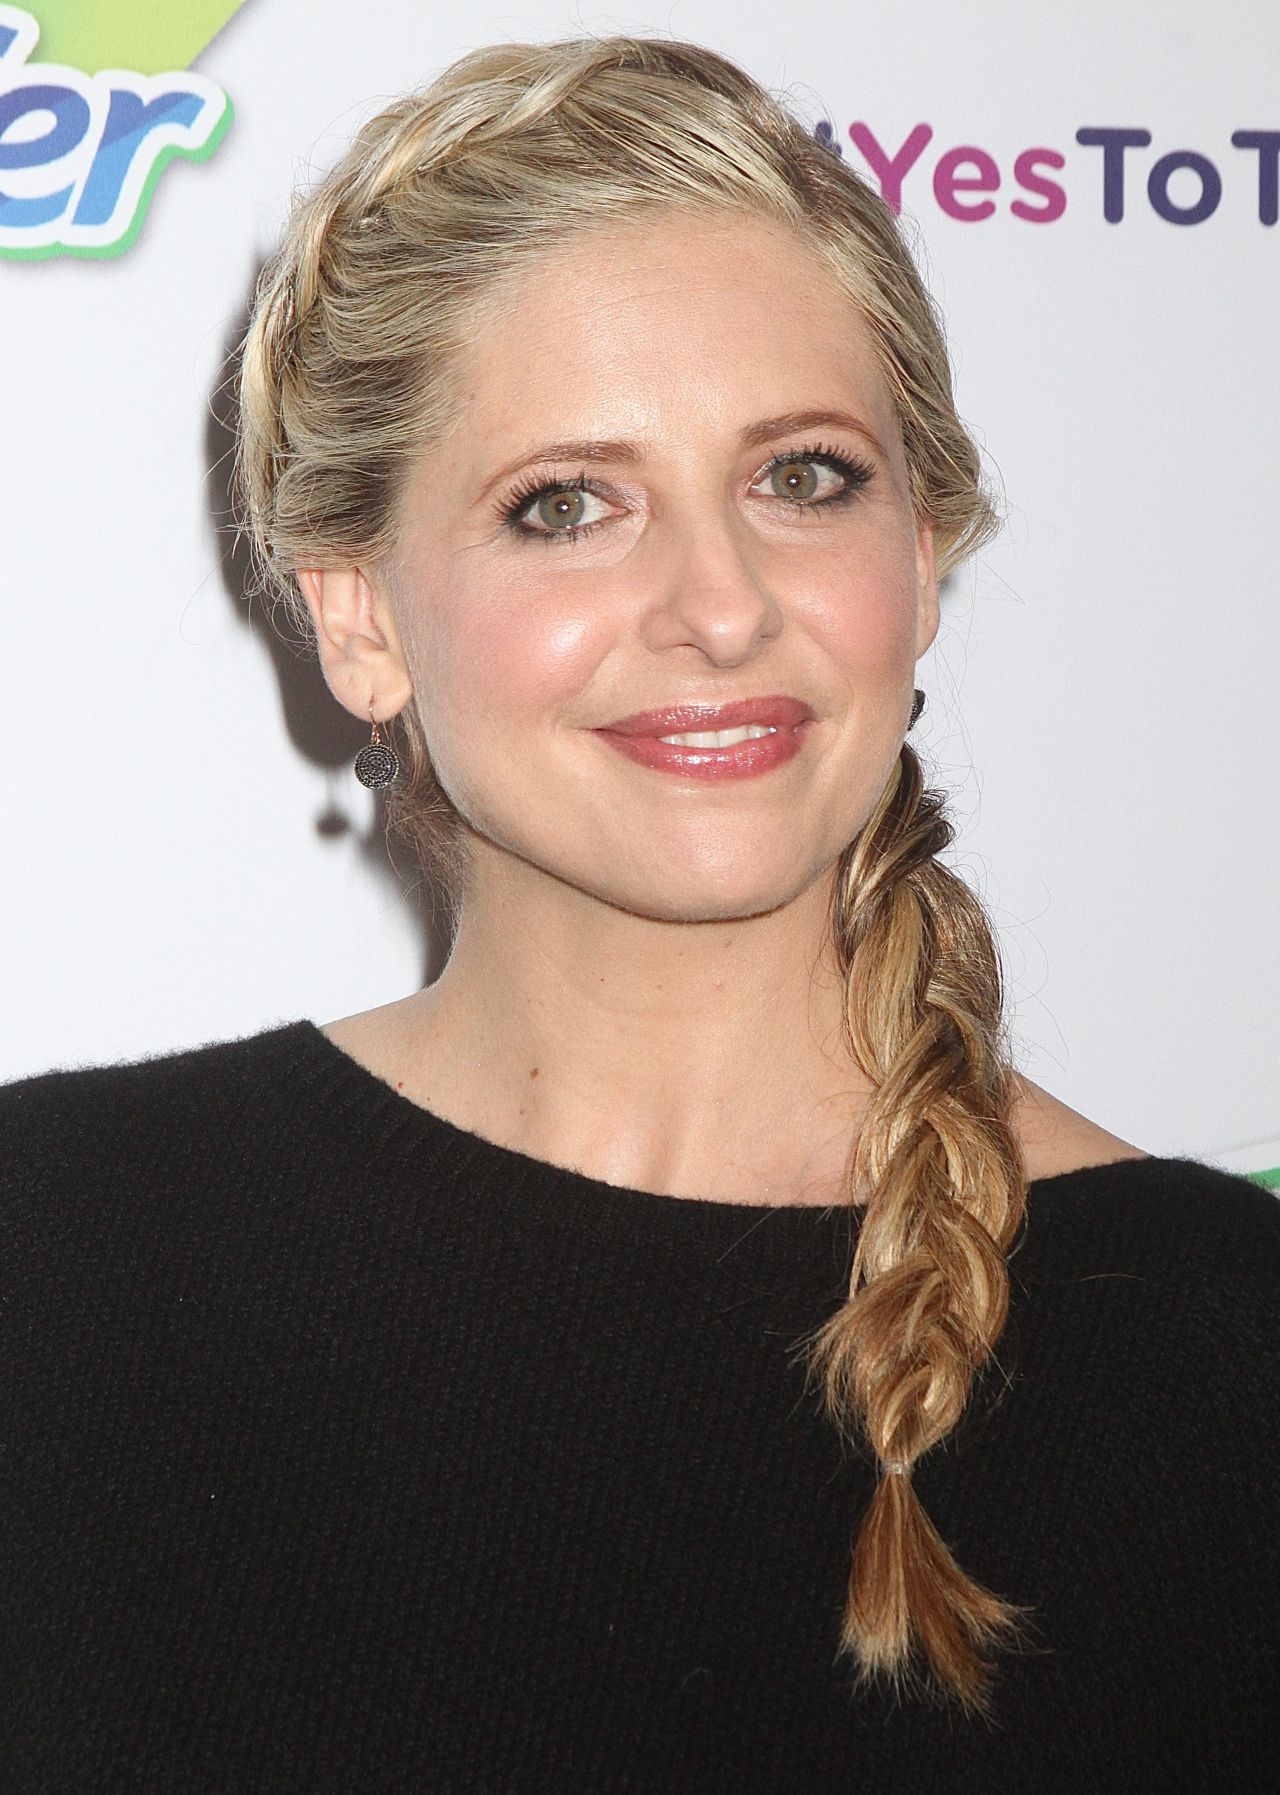 Sarah michelle gellar swiffer yes to the mess event in new